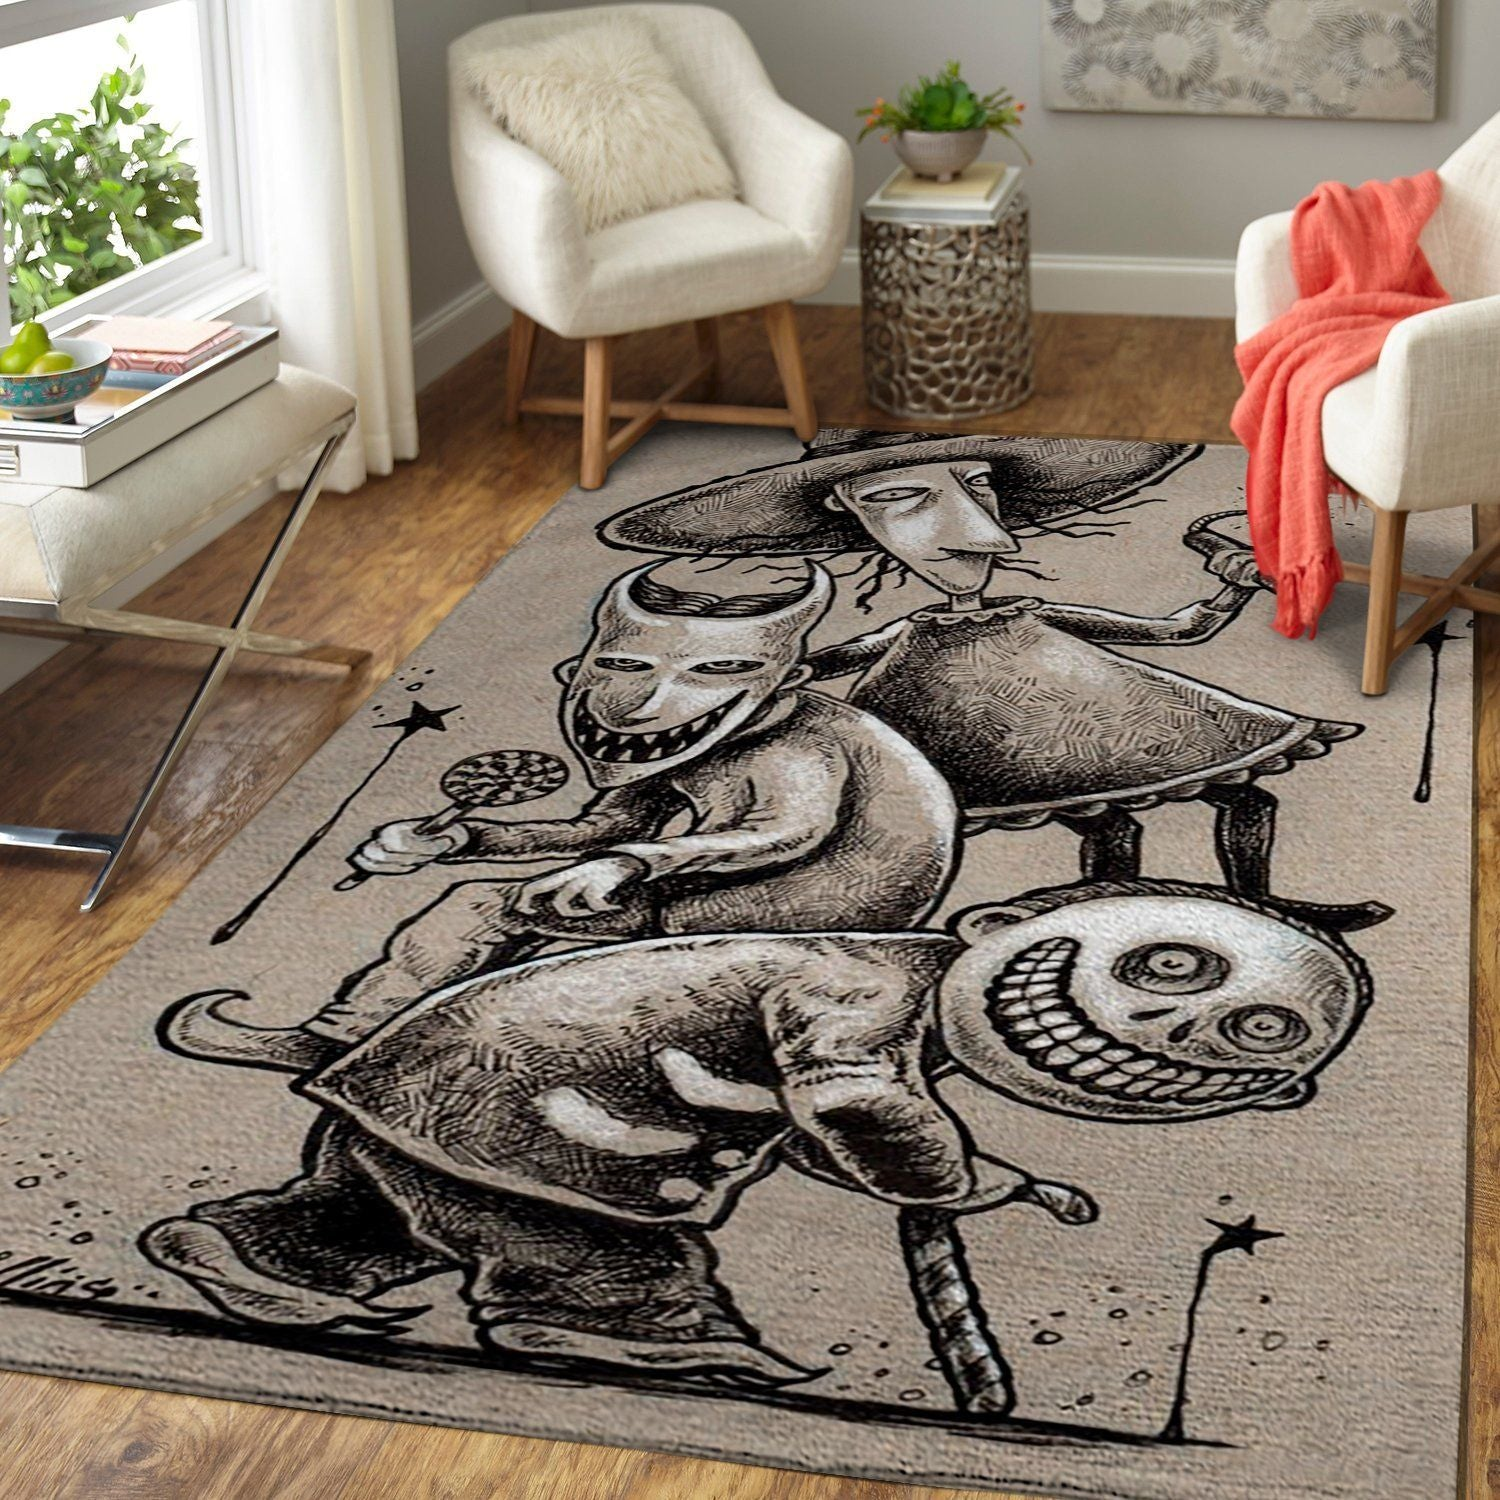 The Nightmare Before Christmas Area Rug, Lock, Shock & Barrel - Oogie's Boys Living Room Decor